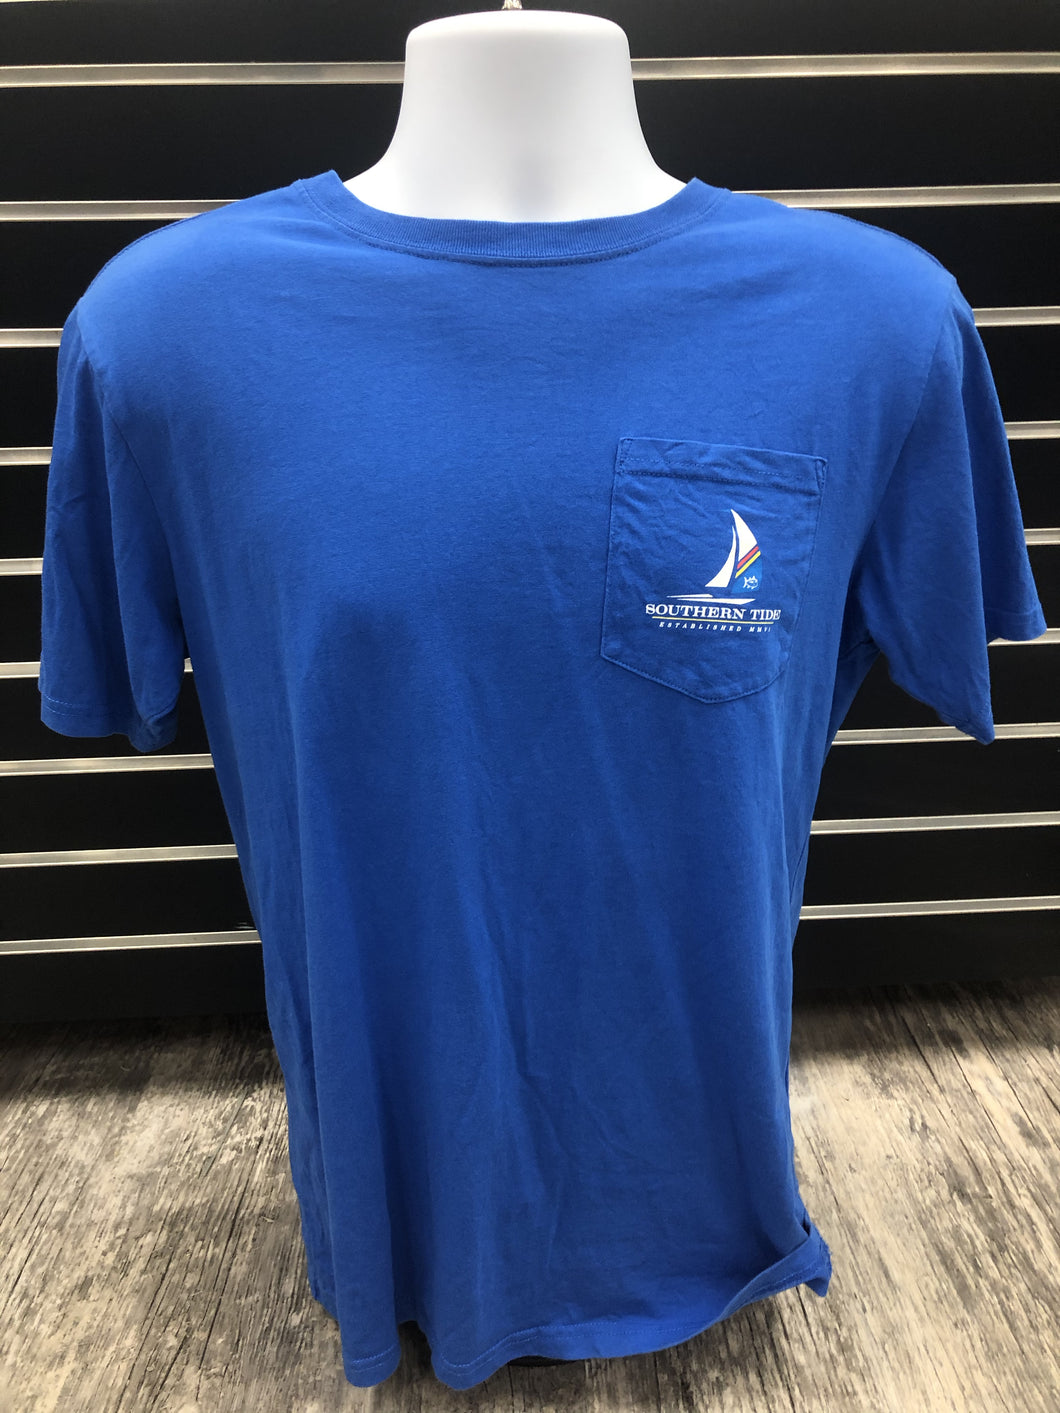 Southern Tide Men's T-Shirt Size Small